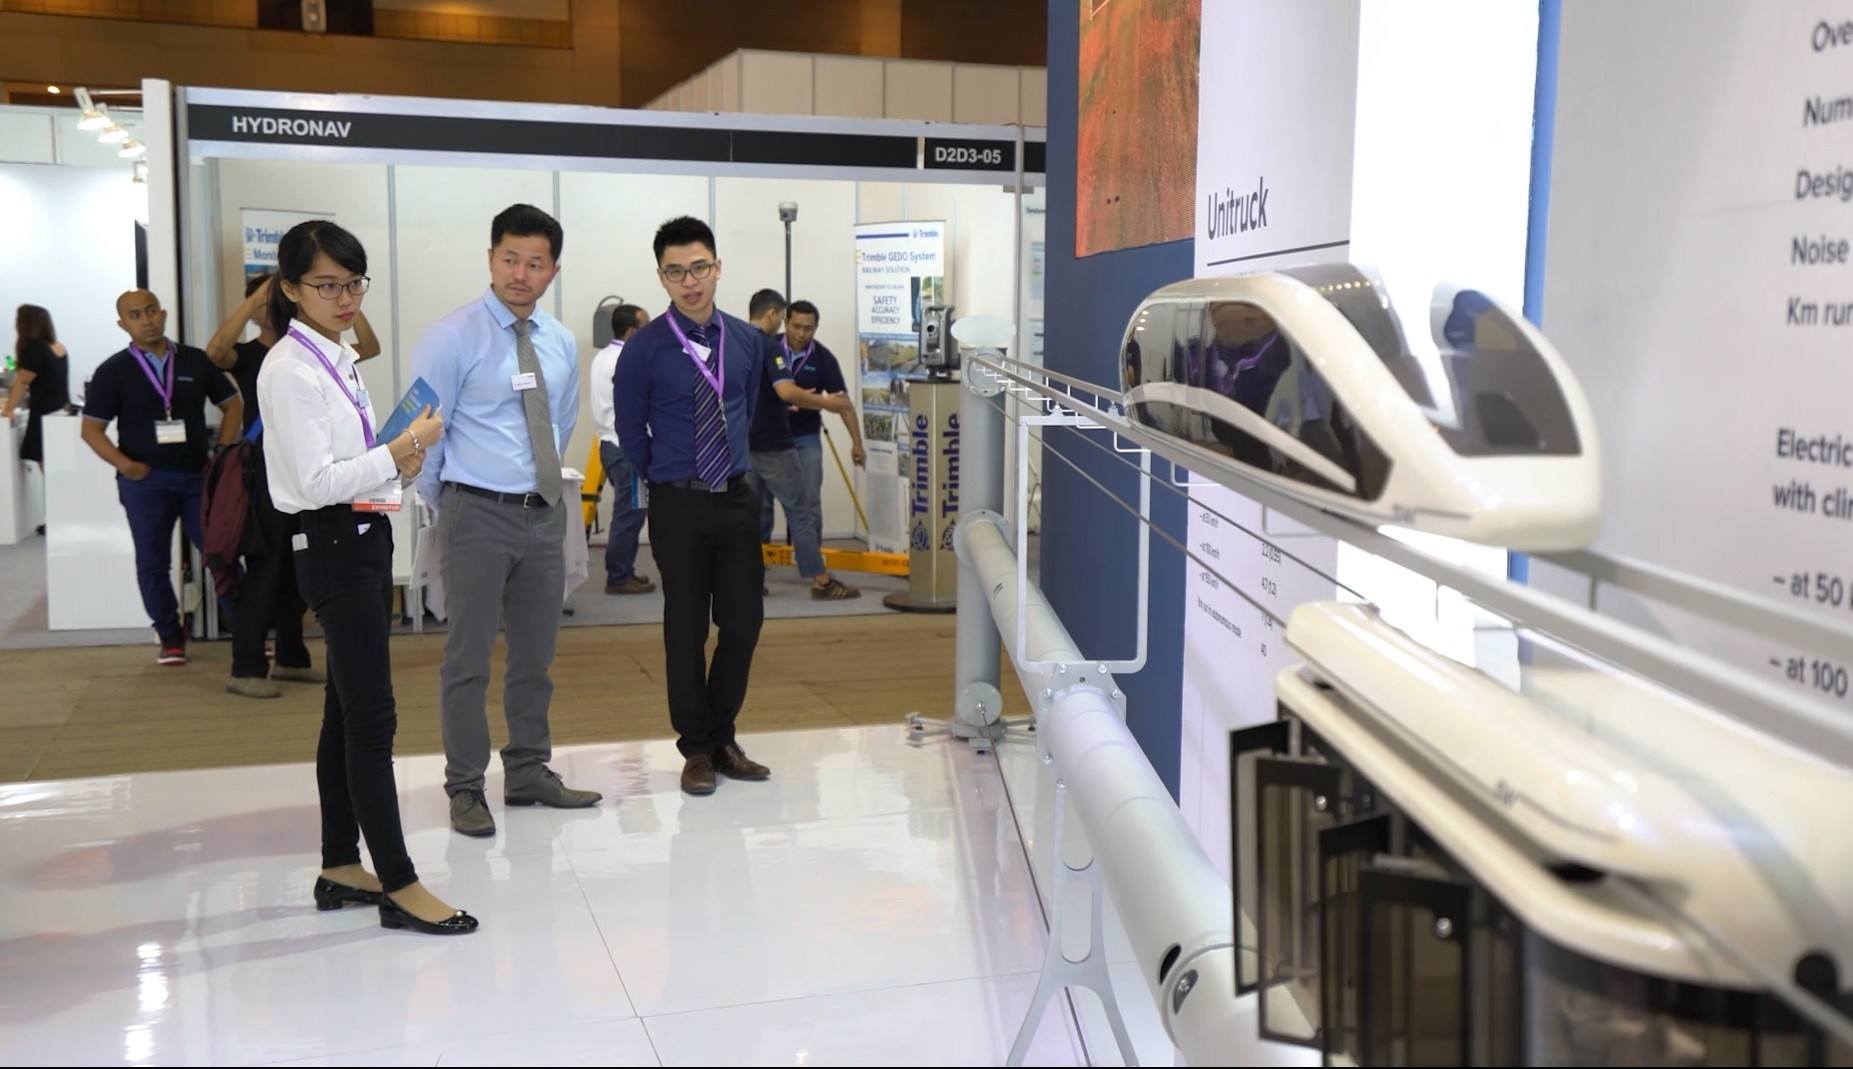 SkyWay à l'exposition RailwayTech Indonesia 2018